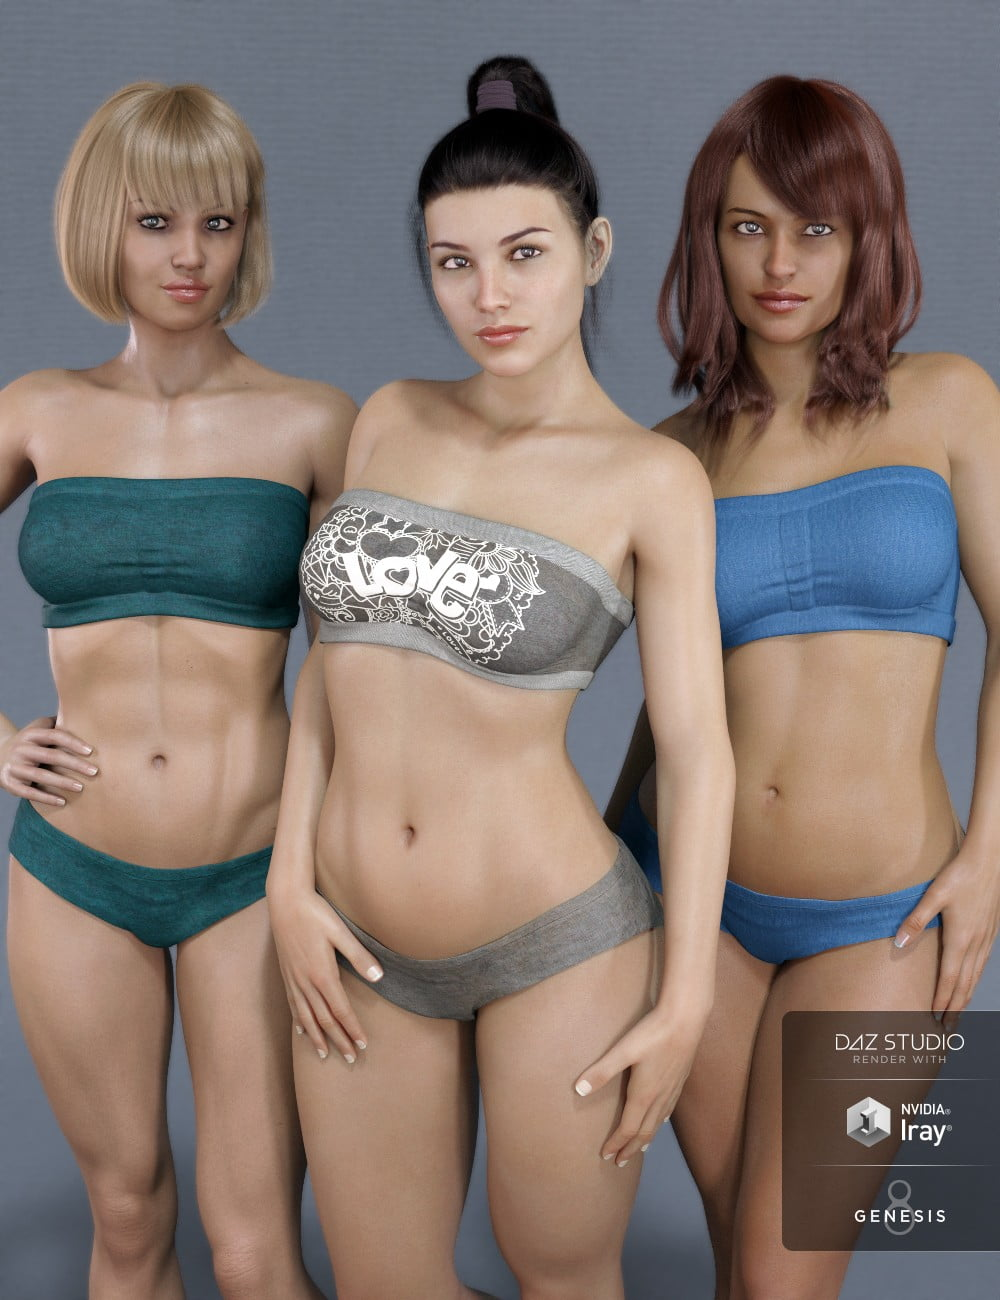 Mesmerizing Faces & Bodies for Genesis 8 Female